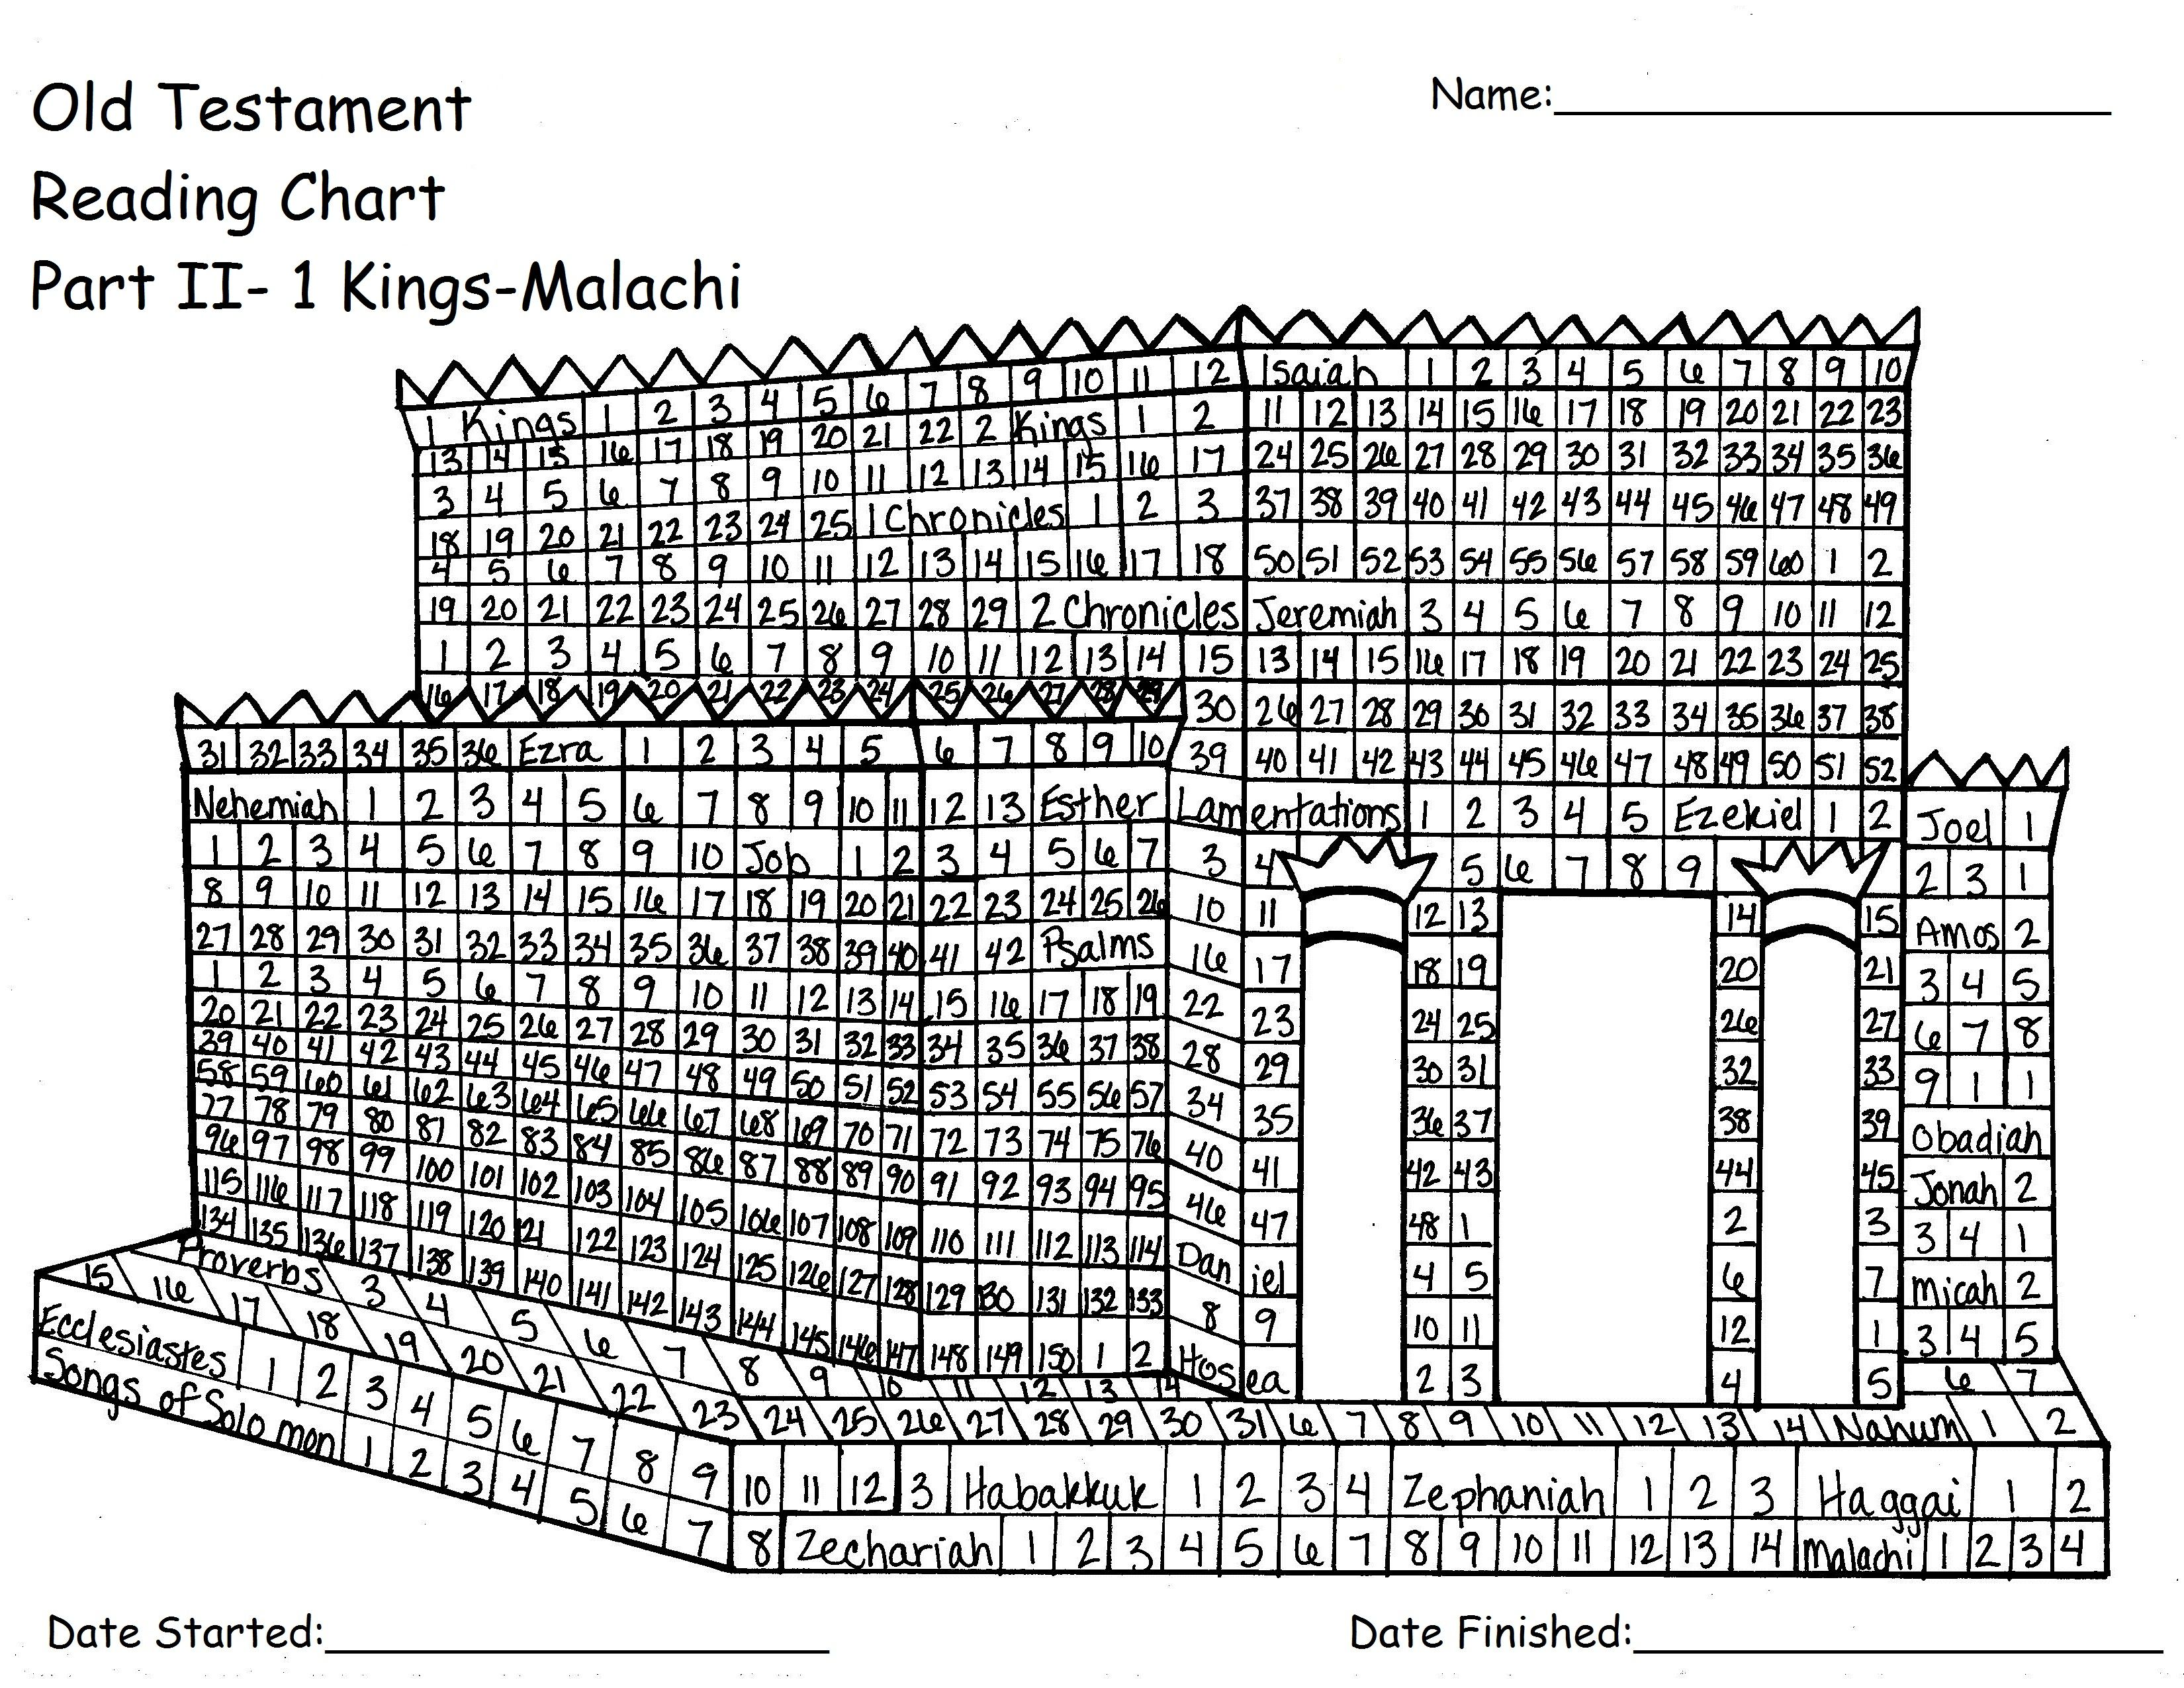 Old Testament Reading Chart Part Ii